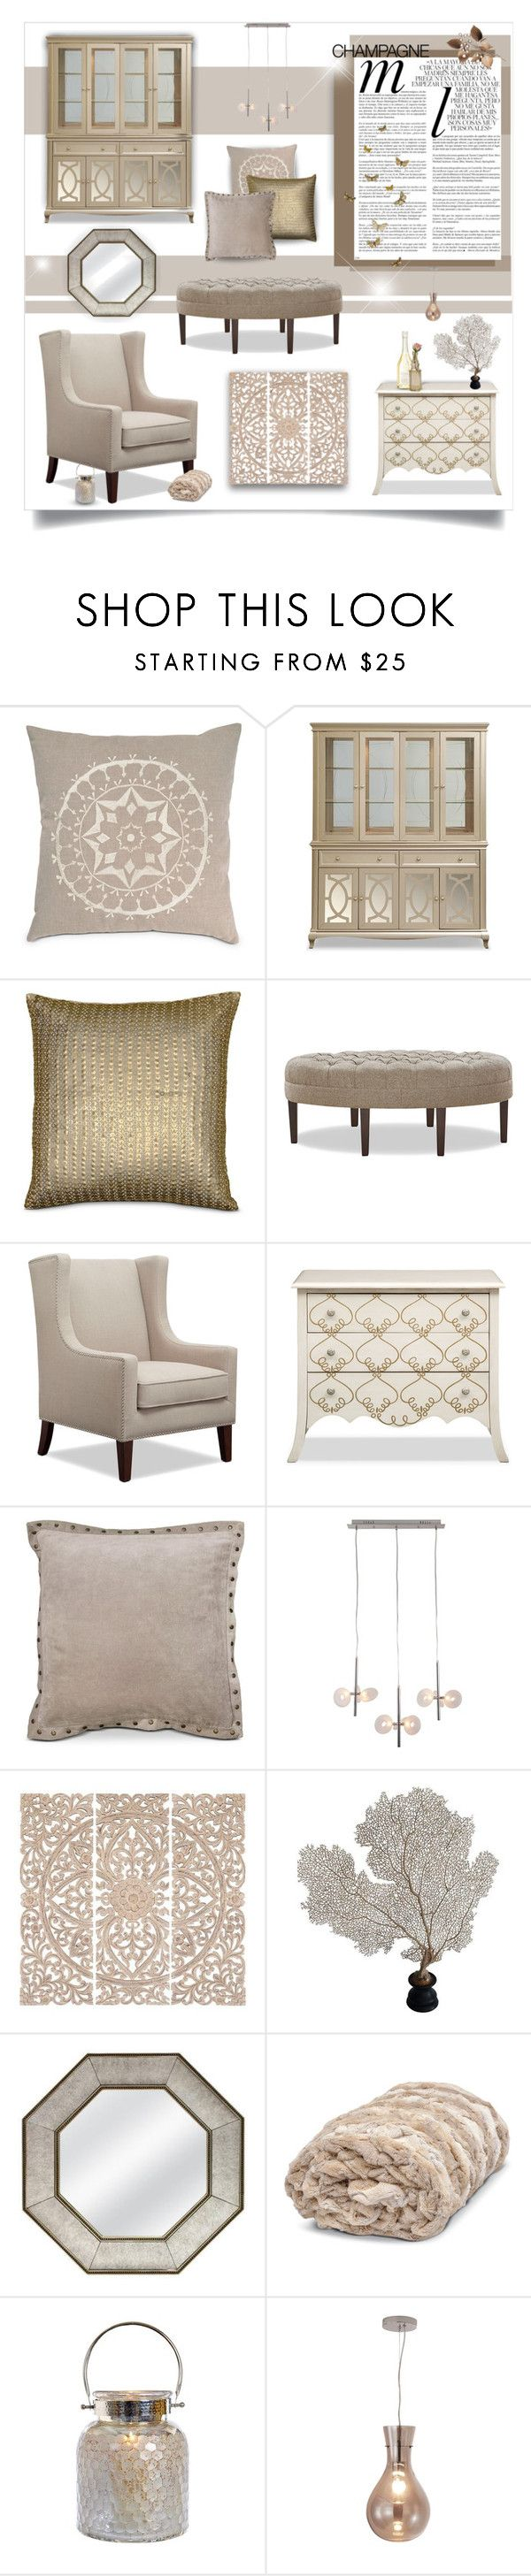 Champagne Shade by amsigfurniture on Polyvore featuring interior, interiors, interior design, home, home decor, interior decorating, Home Decorators Collection, Cultural Intrigue, Whiteley and Color